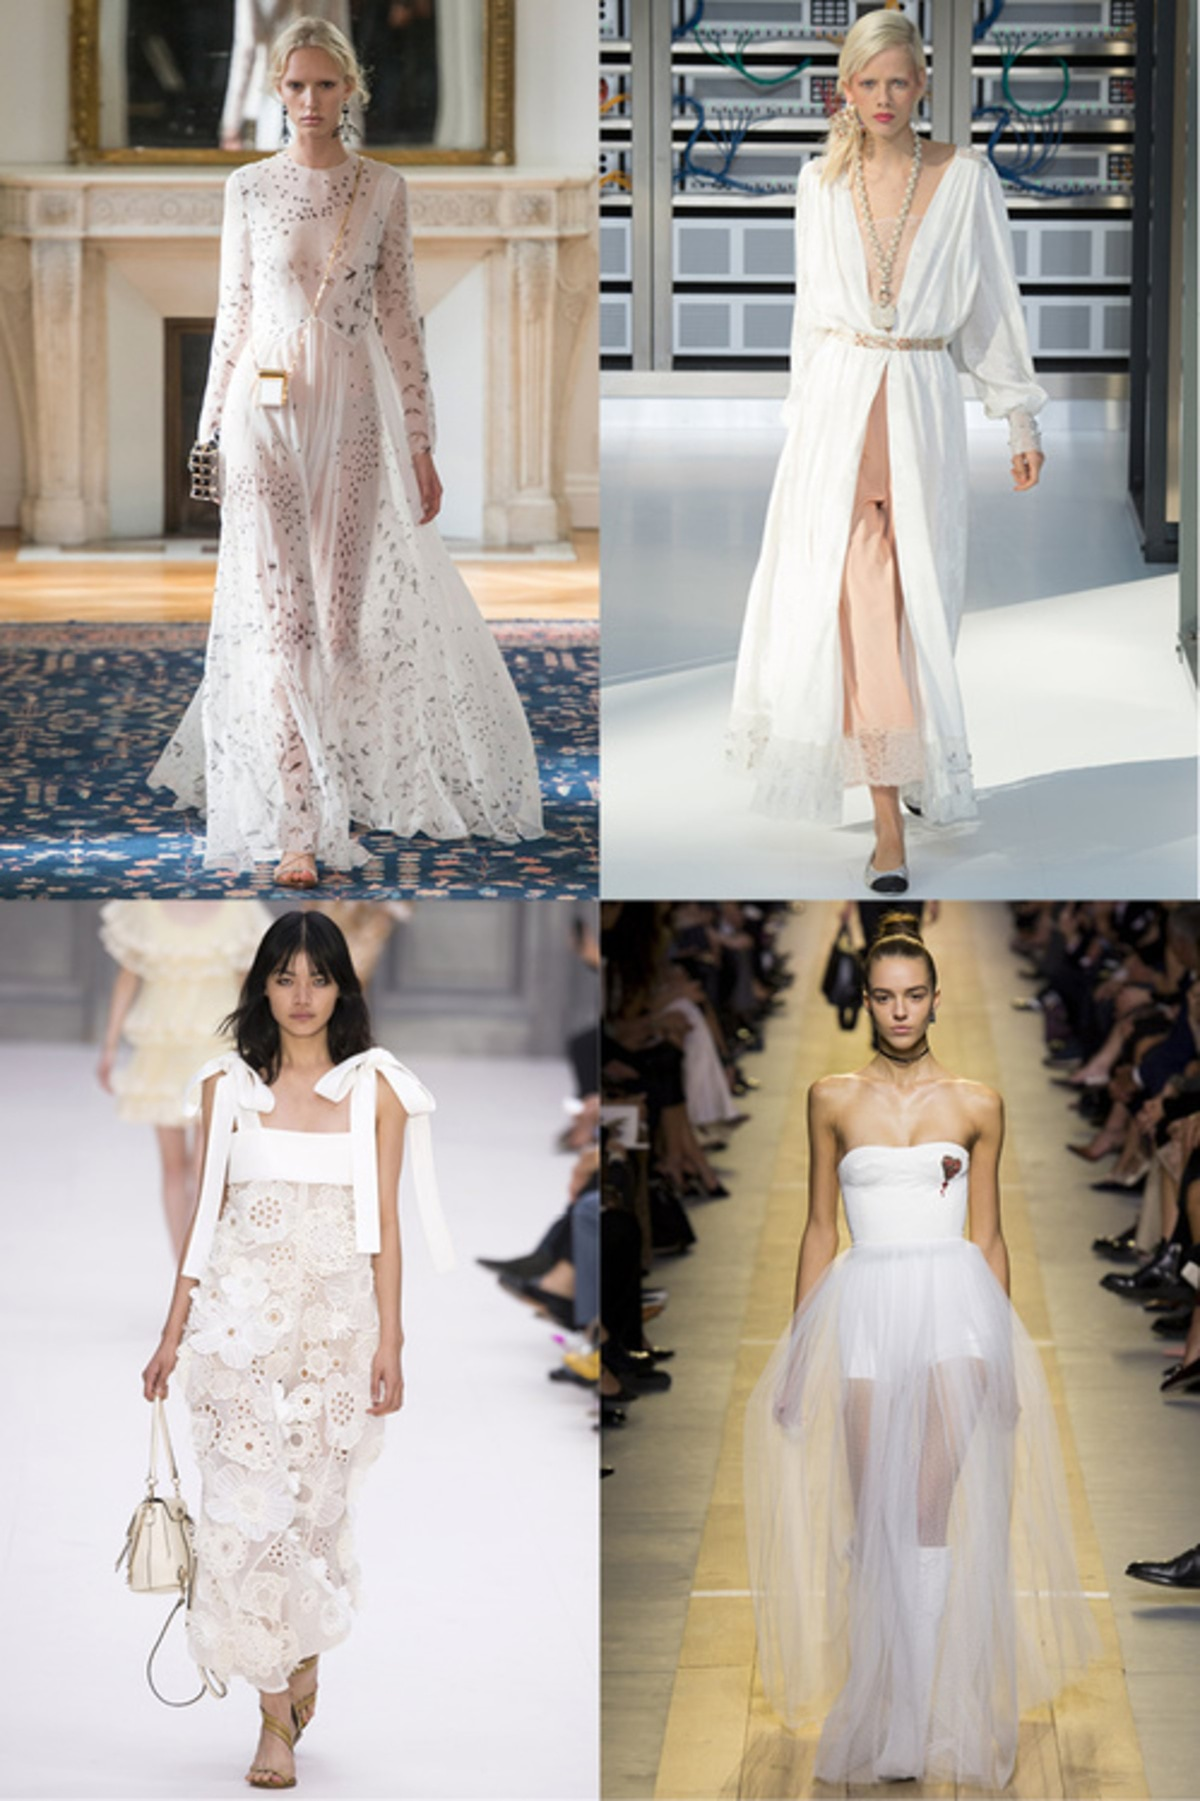 pe_2017_inspiration_mariage__les_robes_blanches_de_la_fashion_week_1002.jpeg_north_499x_white